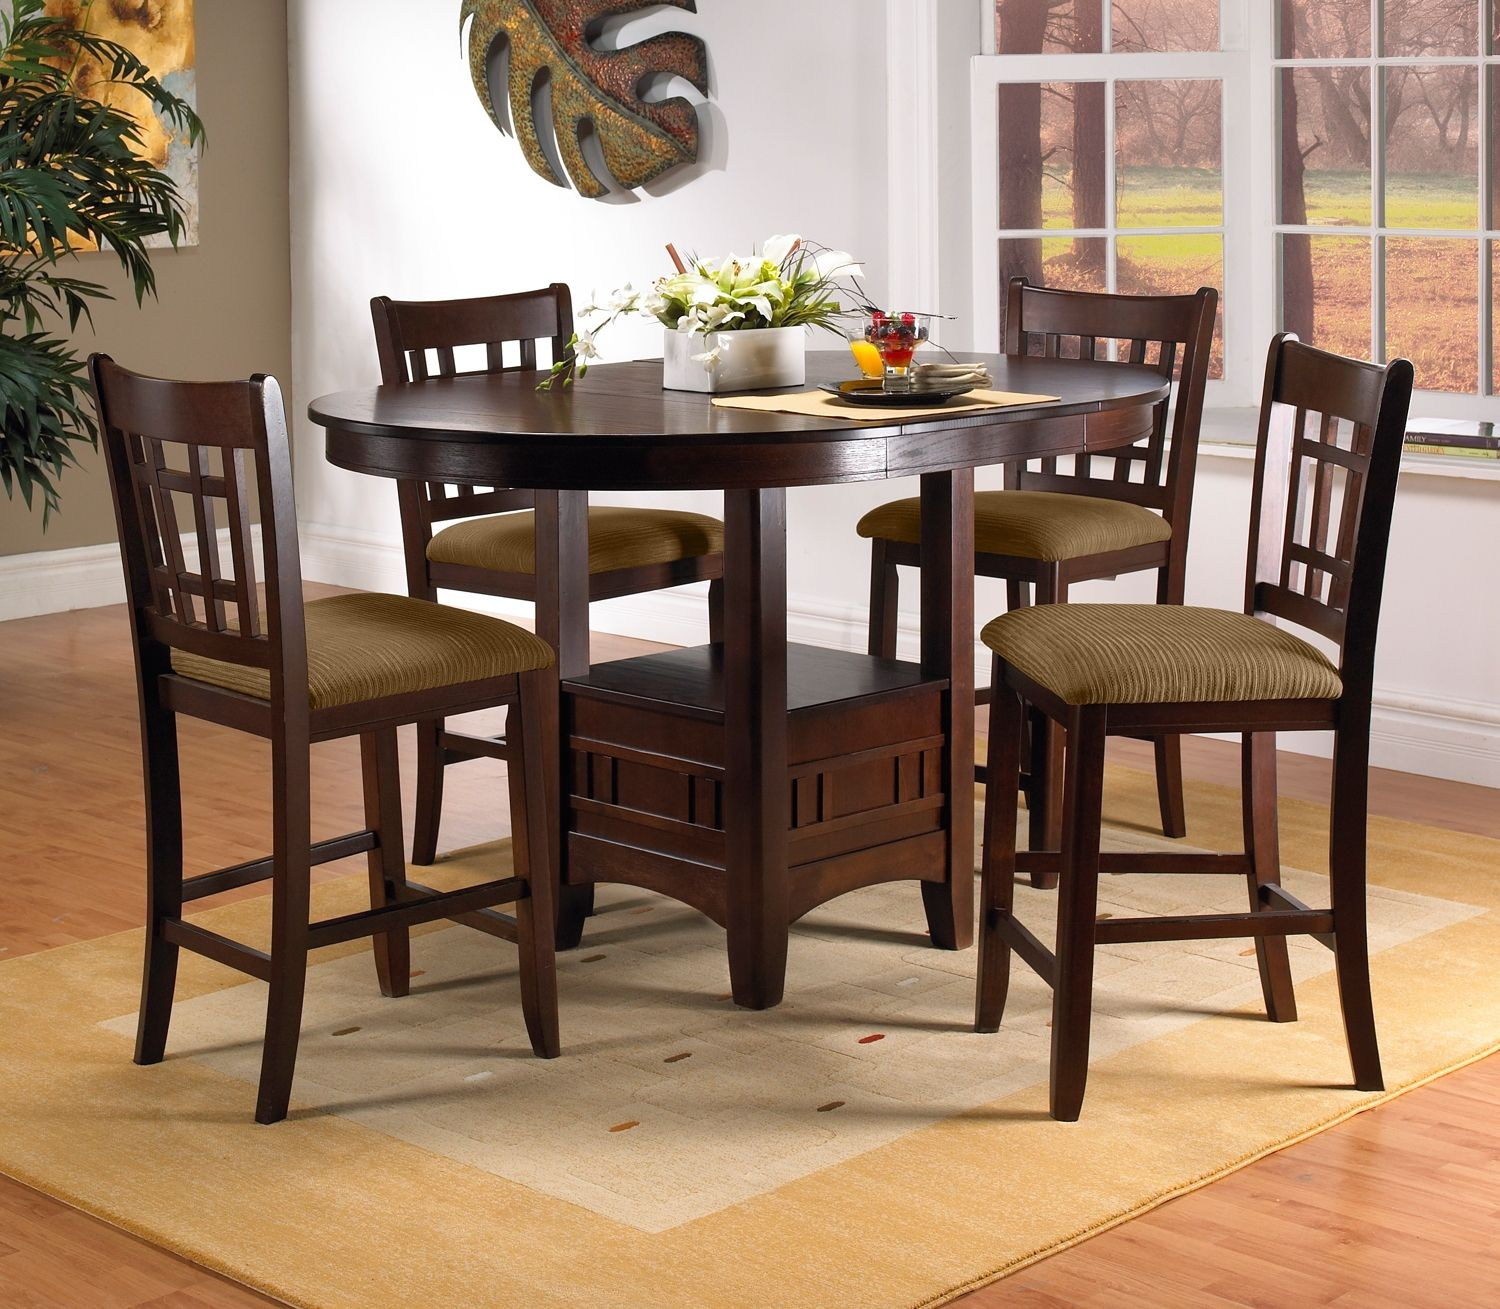 Casual Dining Room Furniturethe Brighton Ii Collectionbrighton Endearing Dining Room Pub Table Sets Inspiration Design